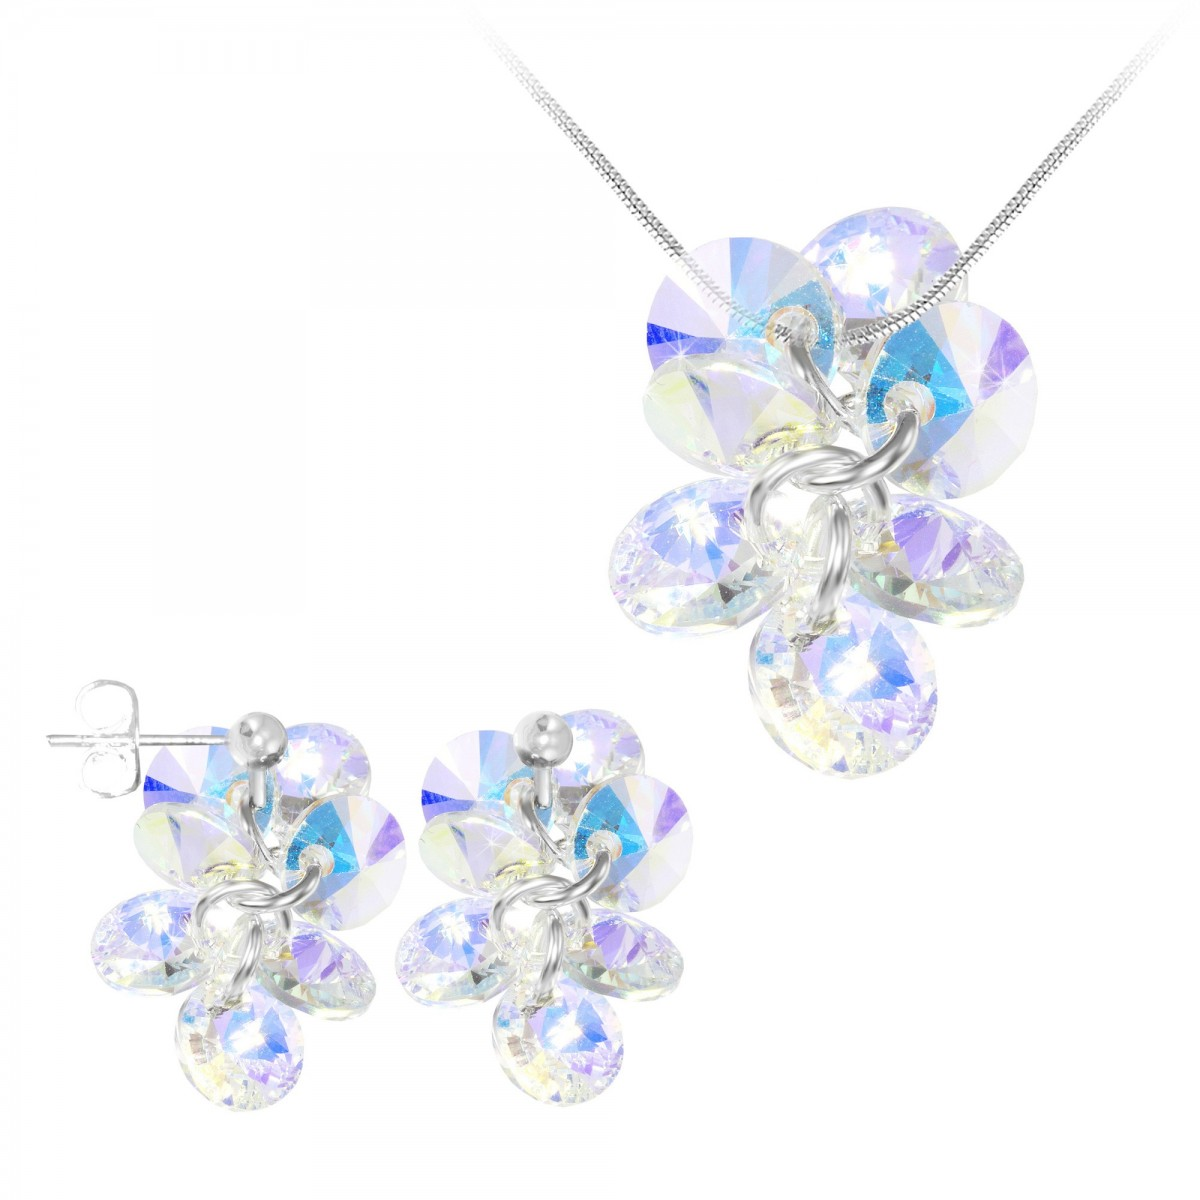 Parure collier et boucles d'oreilles mode So Charm made with crystals from Swarovski irisé